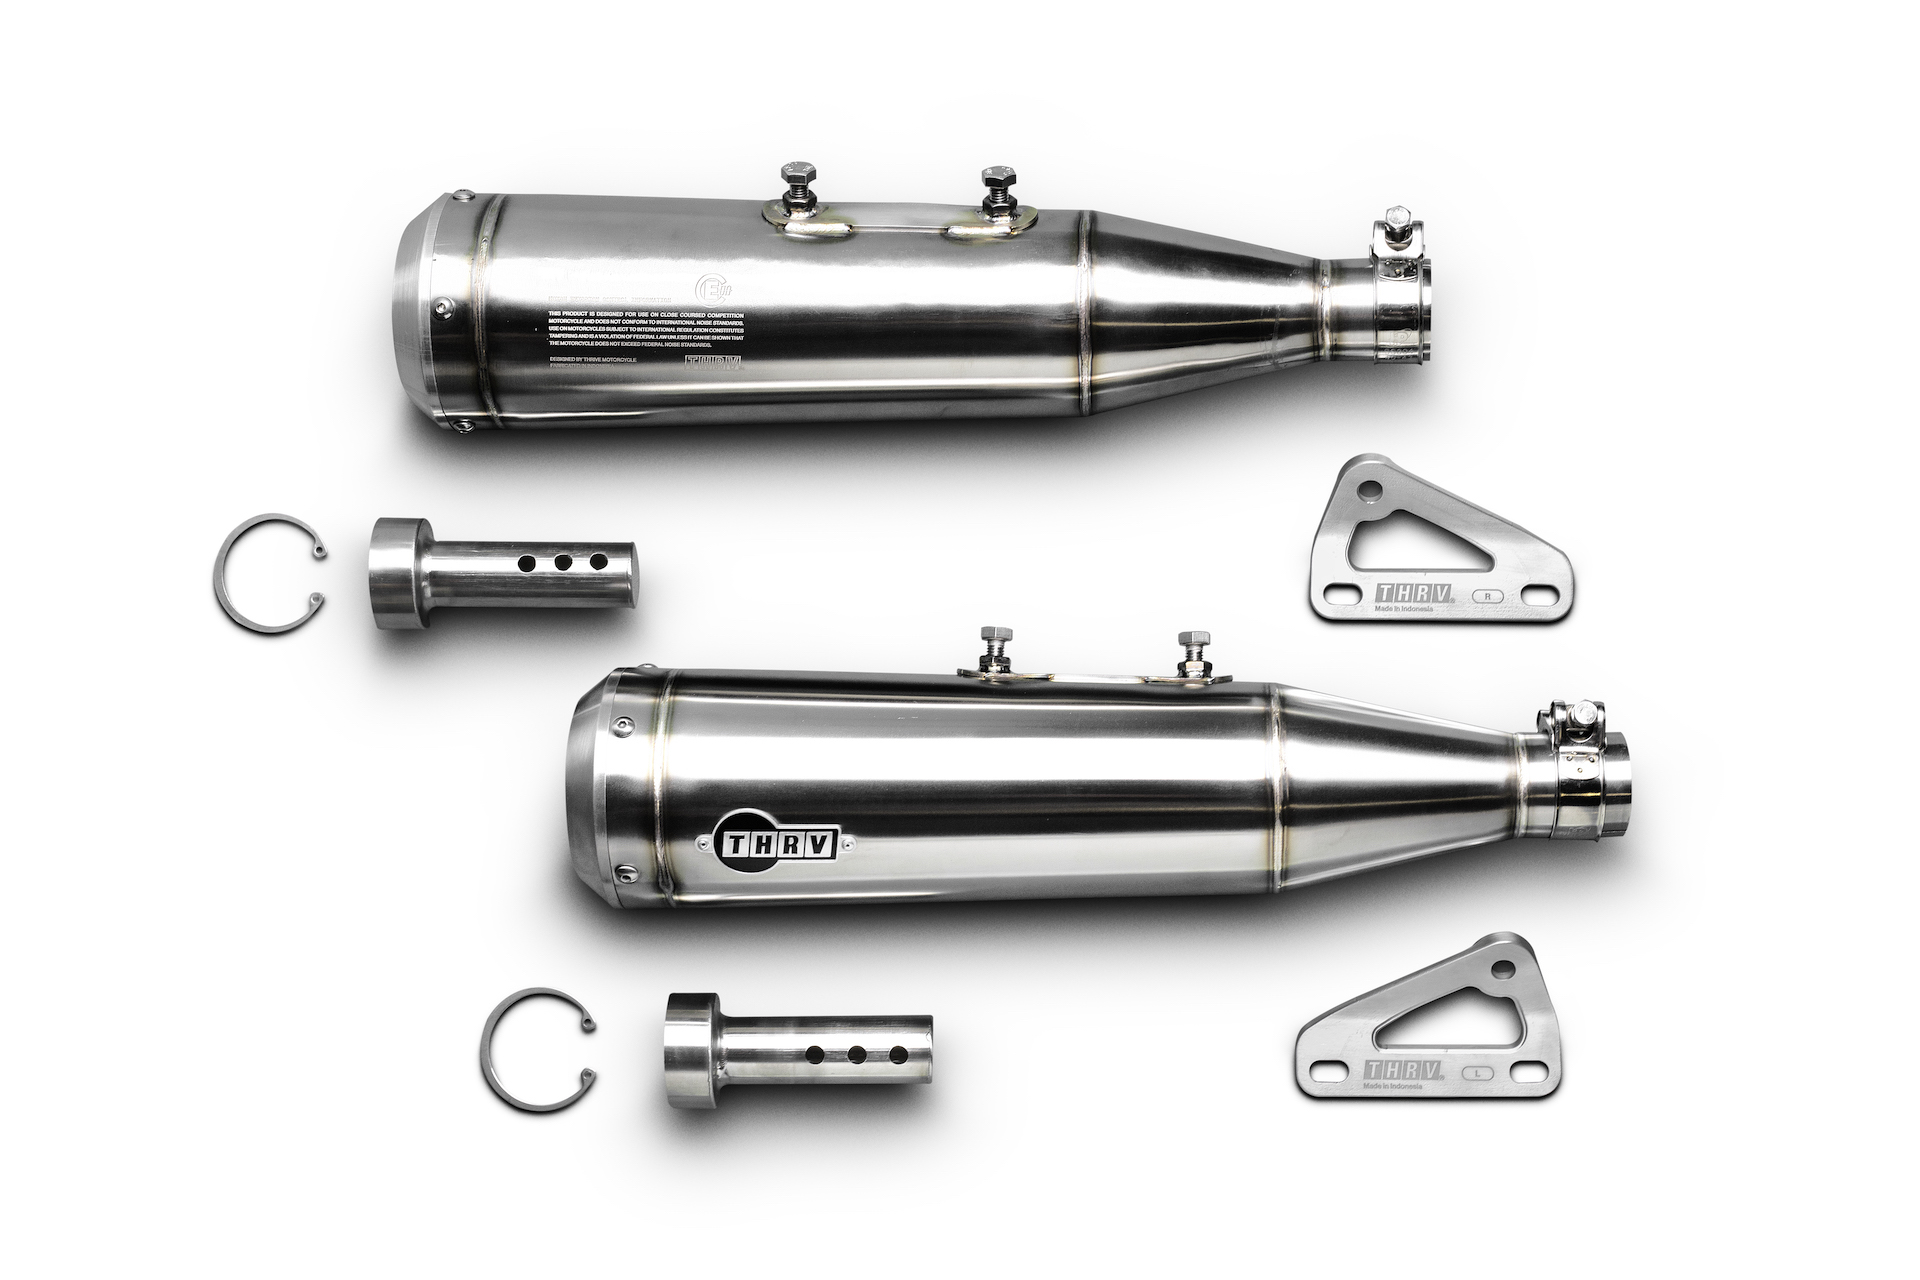 Peony Slip-On Mufflers for Royal Enfield